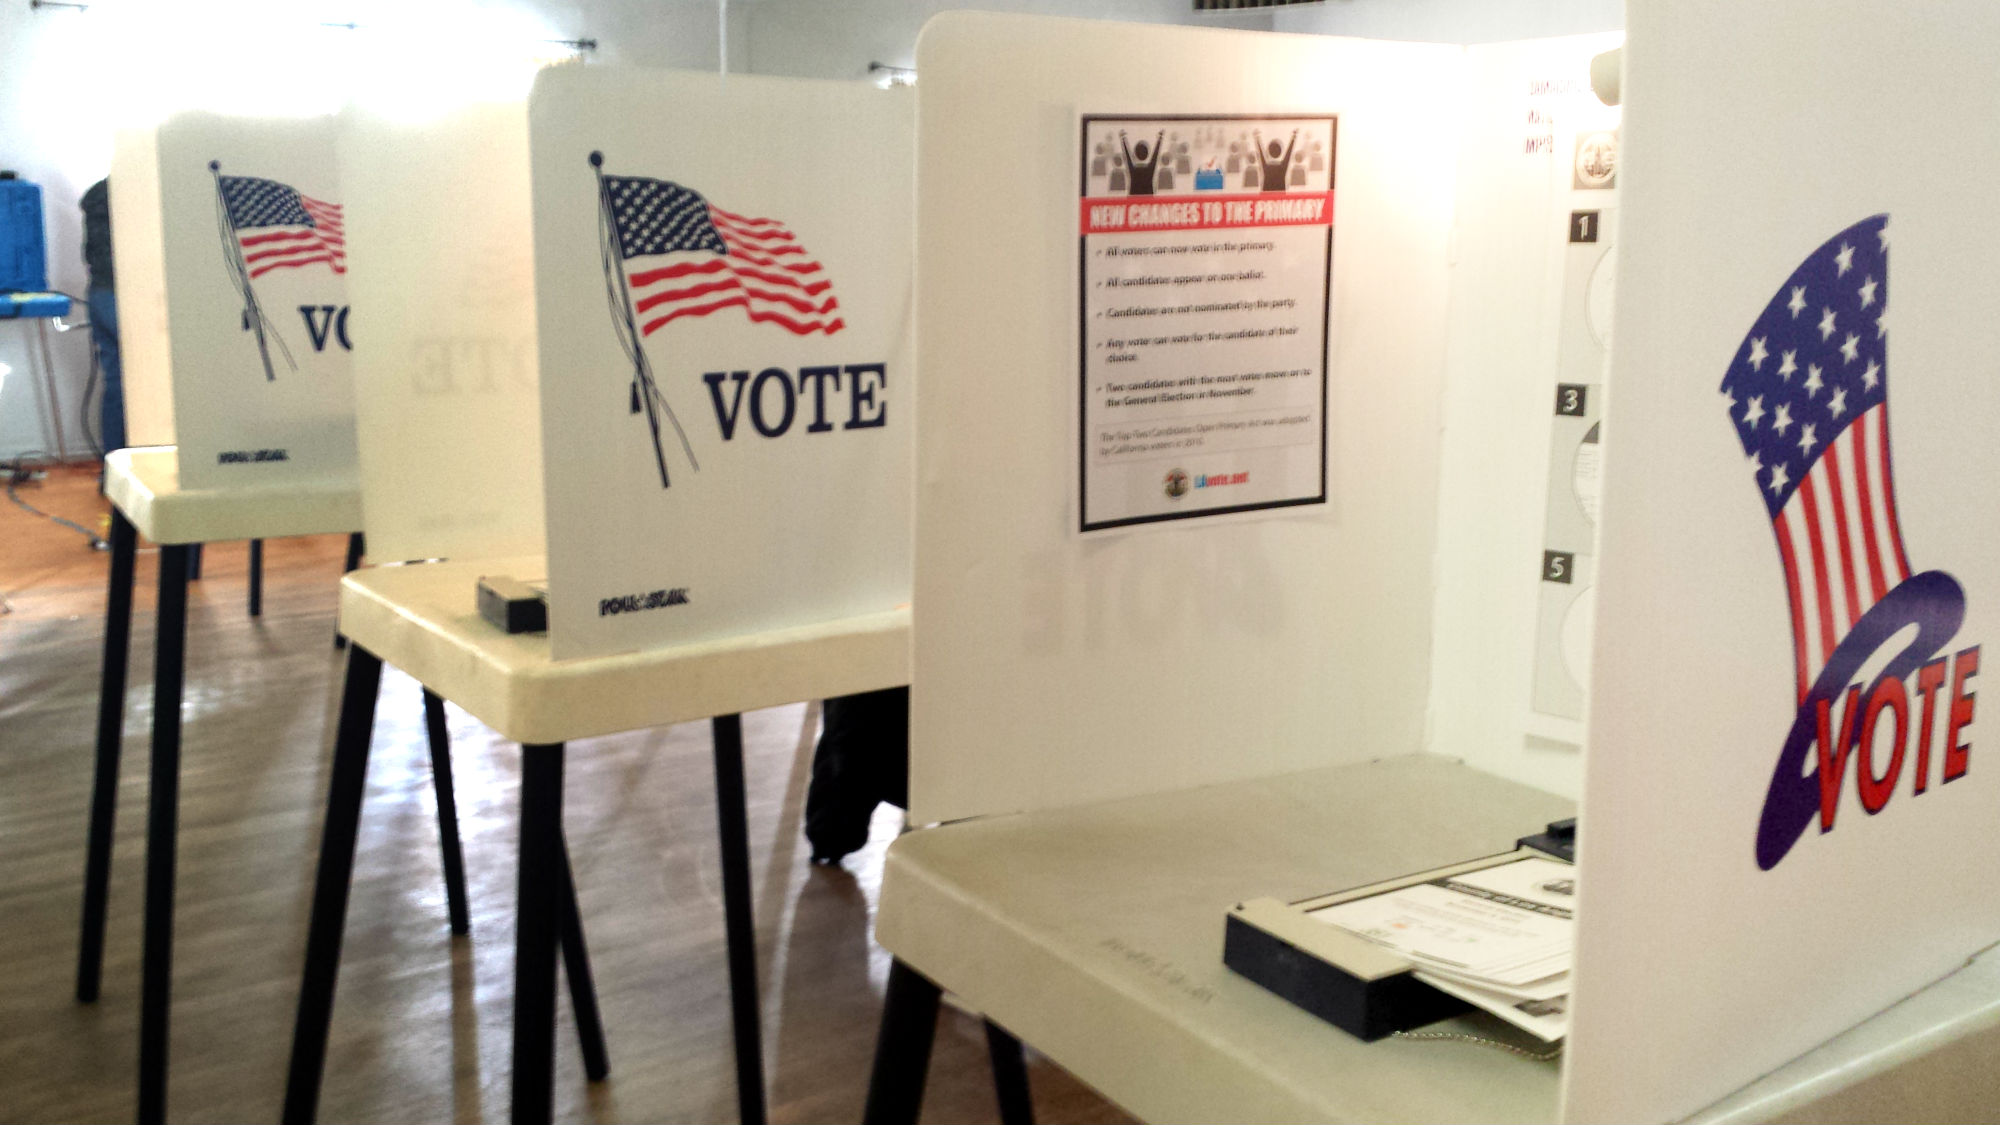 Voting booths. Photo by Stephanie Rivera.